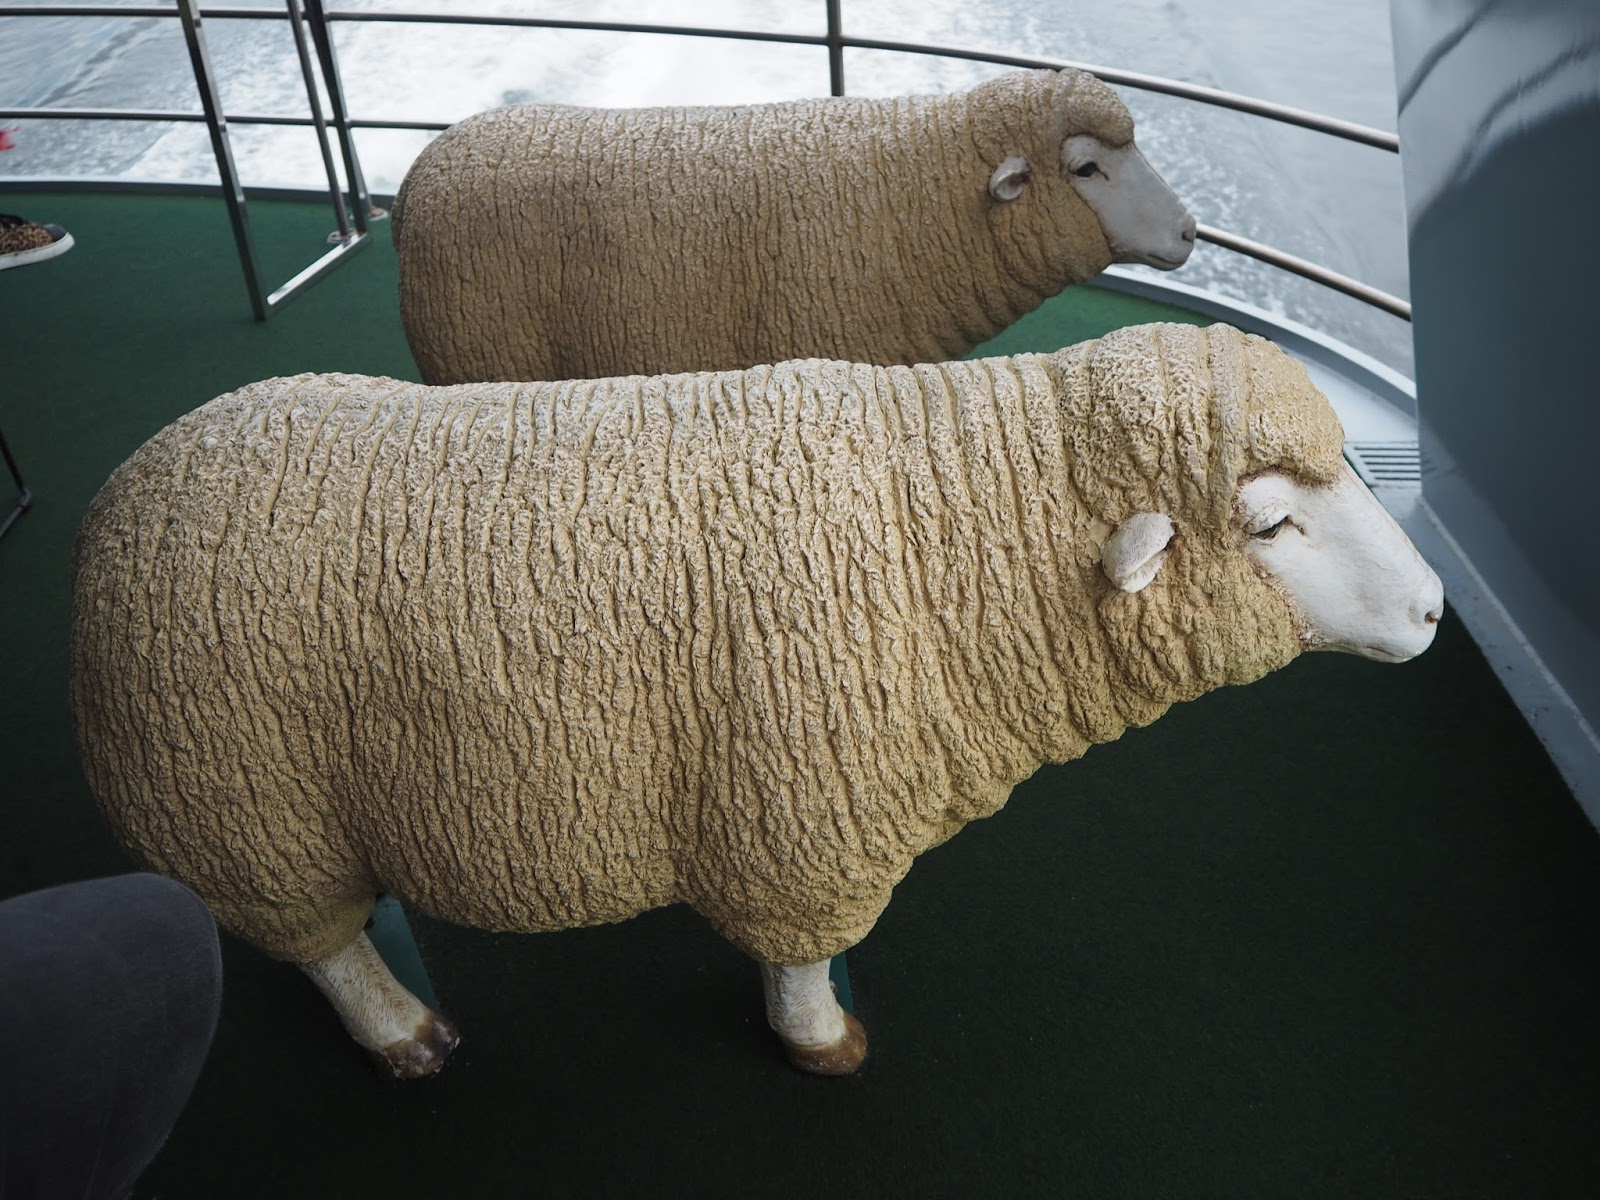 sheep shaped seats on ferry to mona gallery, tasmania